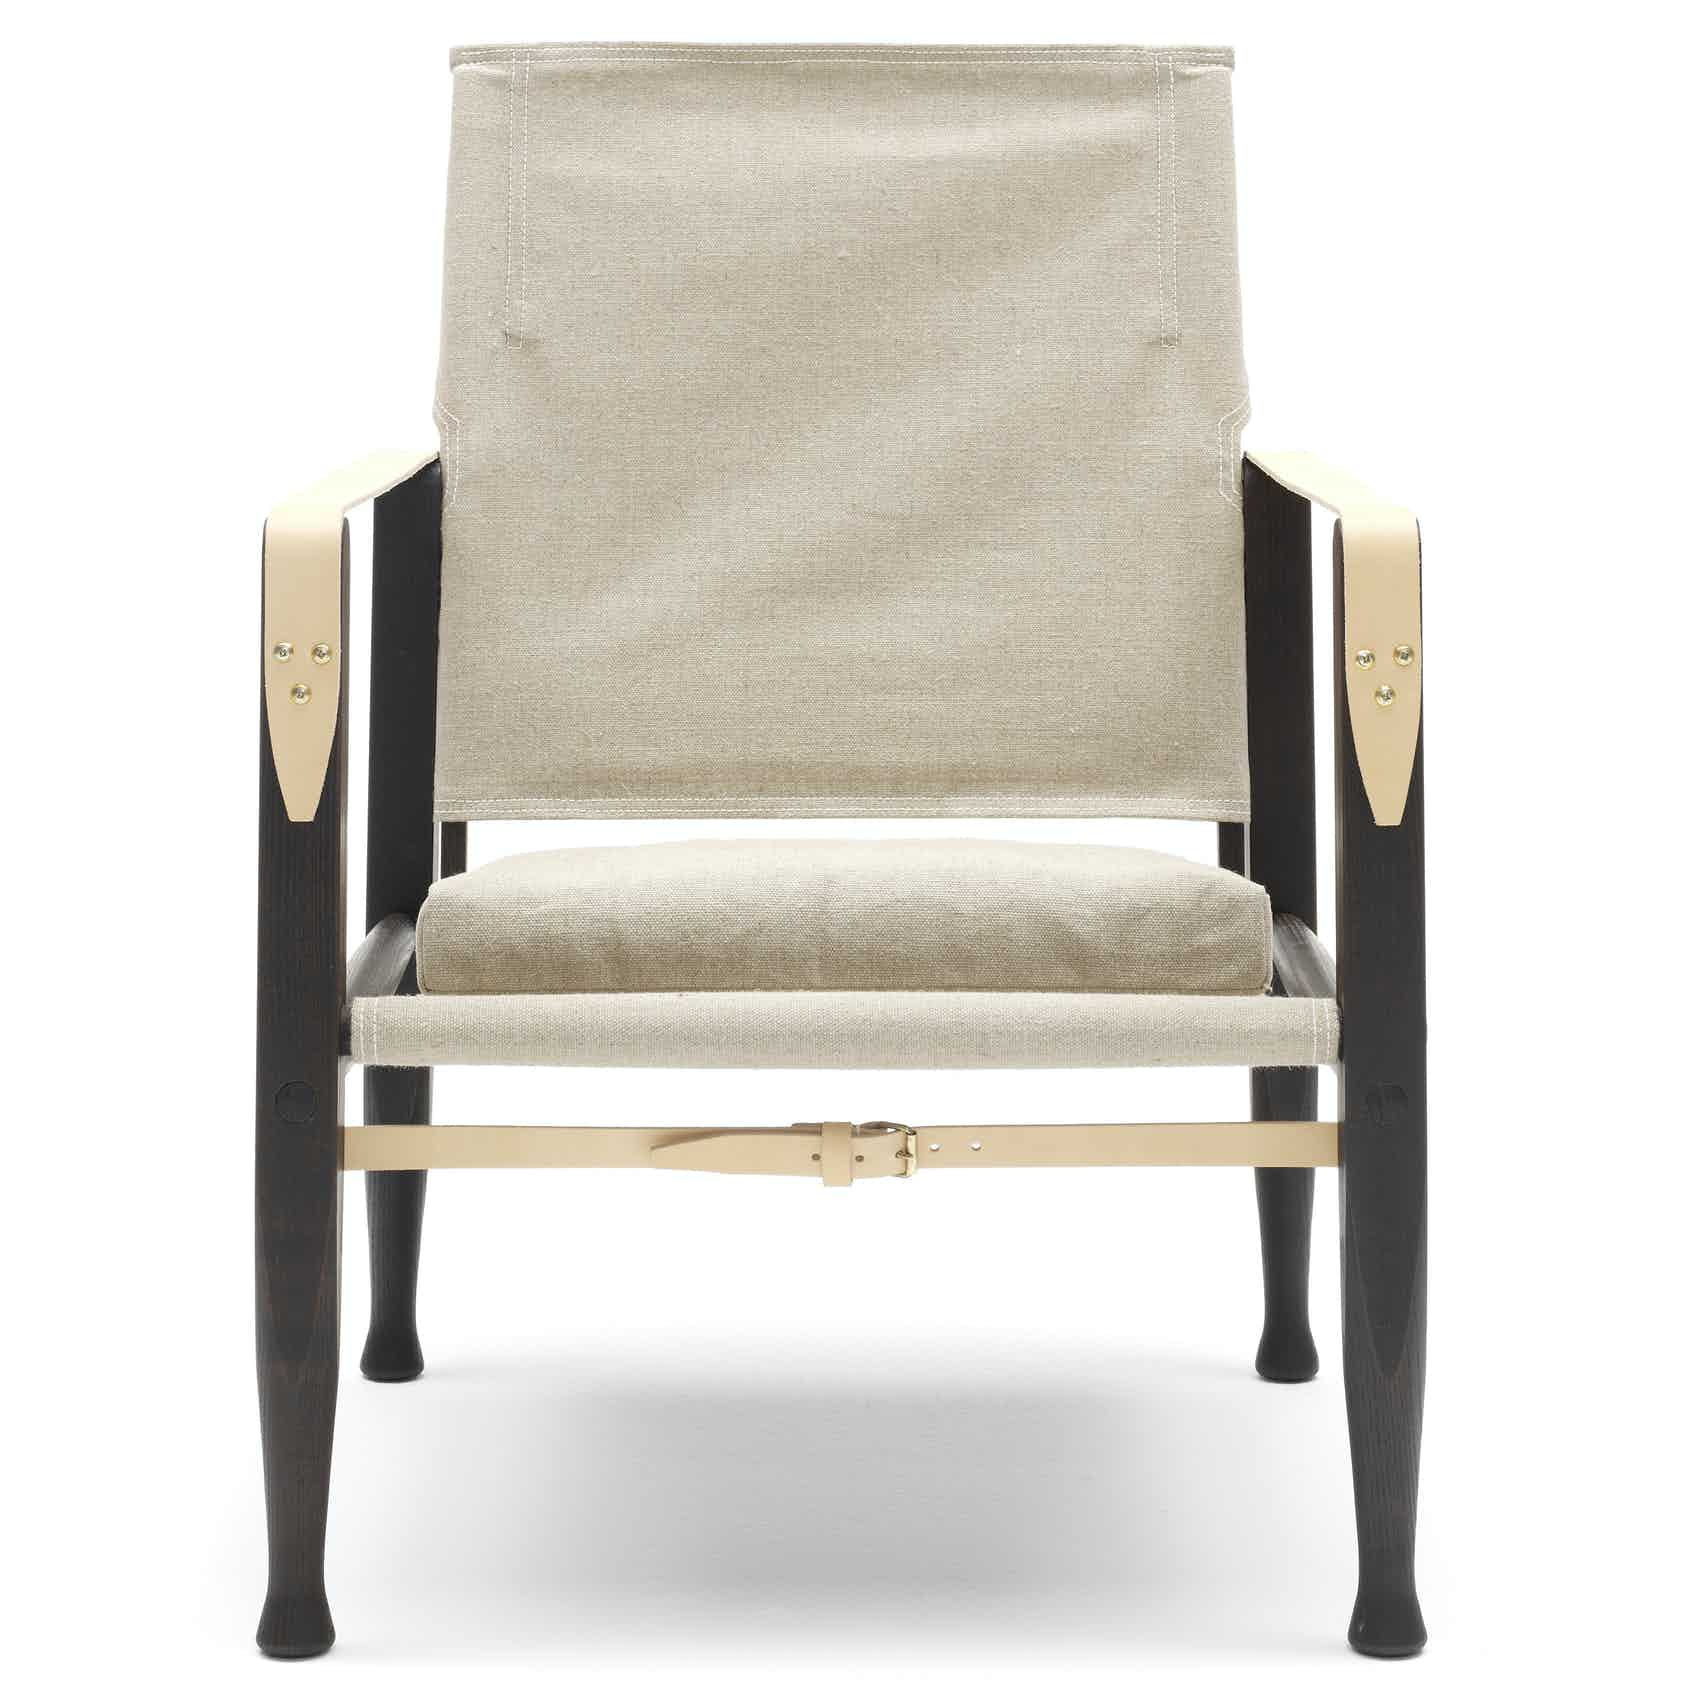 Carl-hansen-son-front-black-legs-safari-chair-haute-living